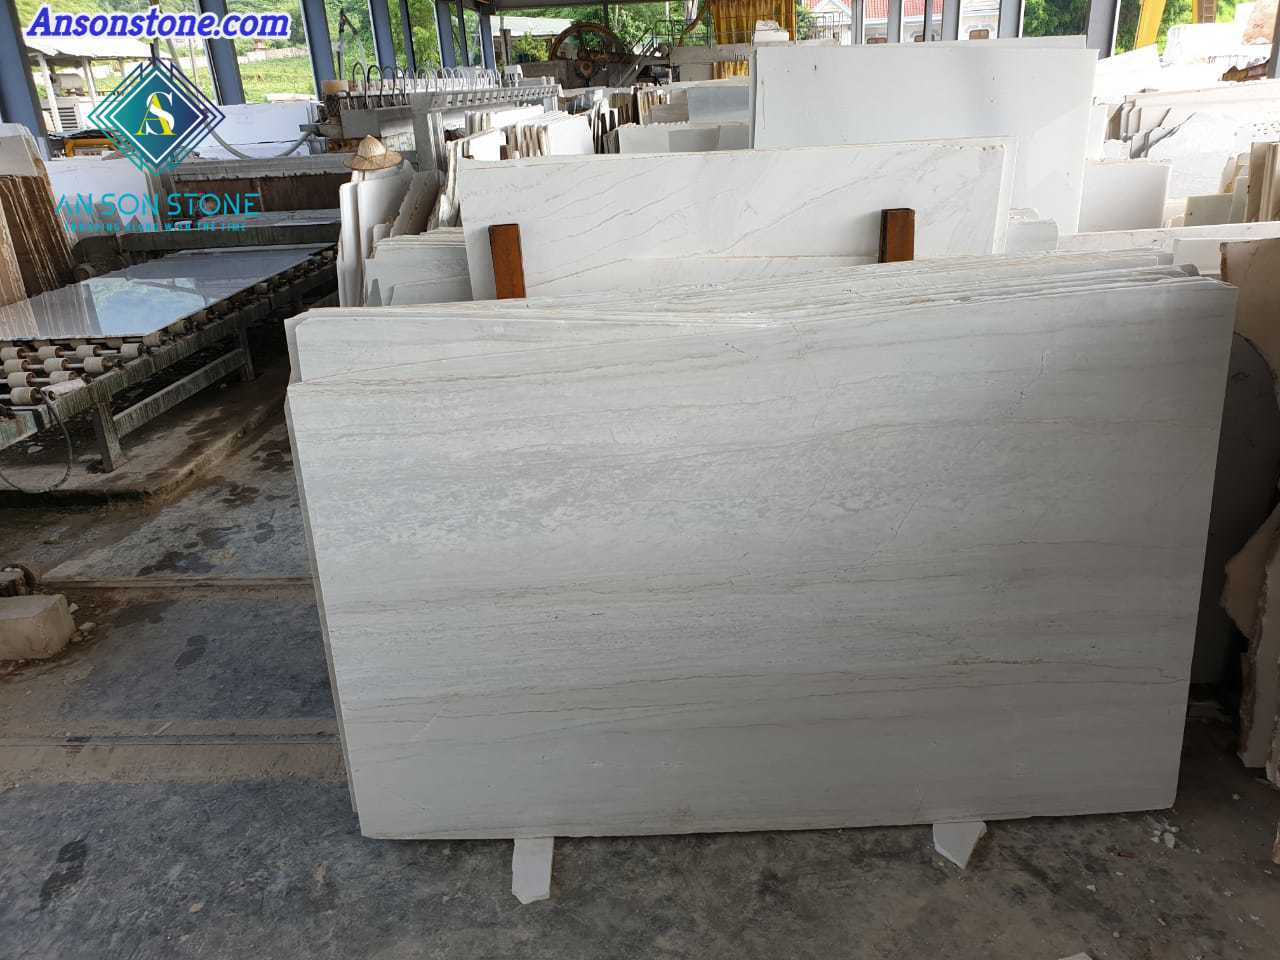 Small Wood Veins Marble Slabs An Son Stone